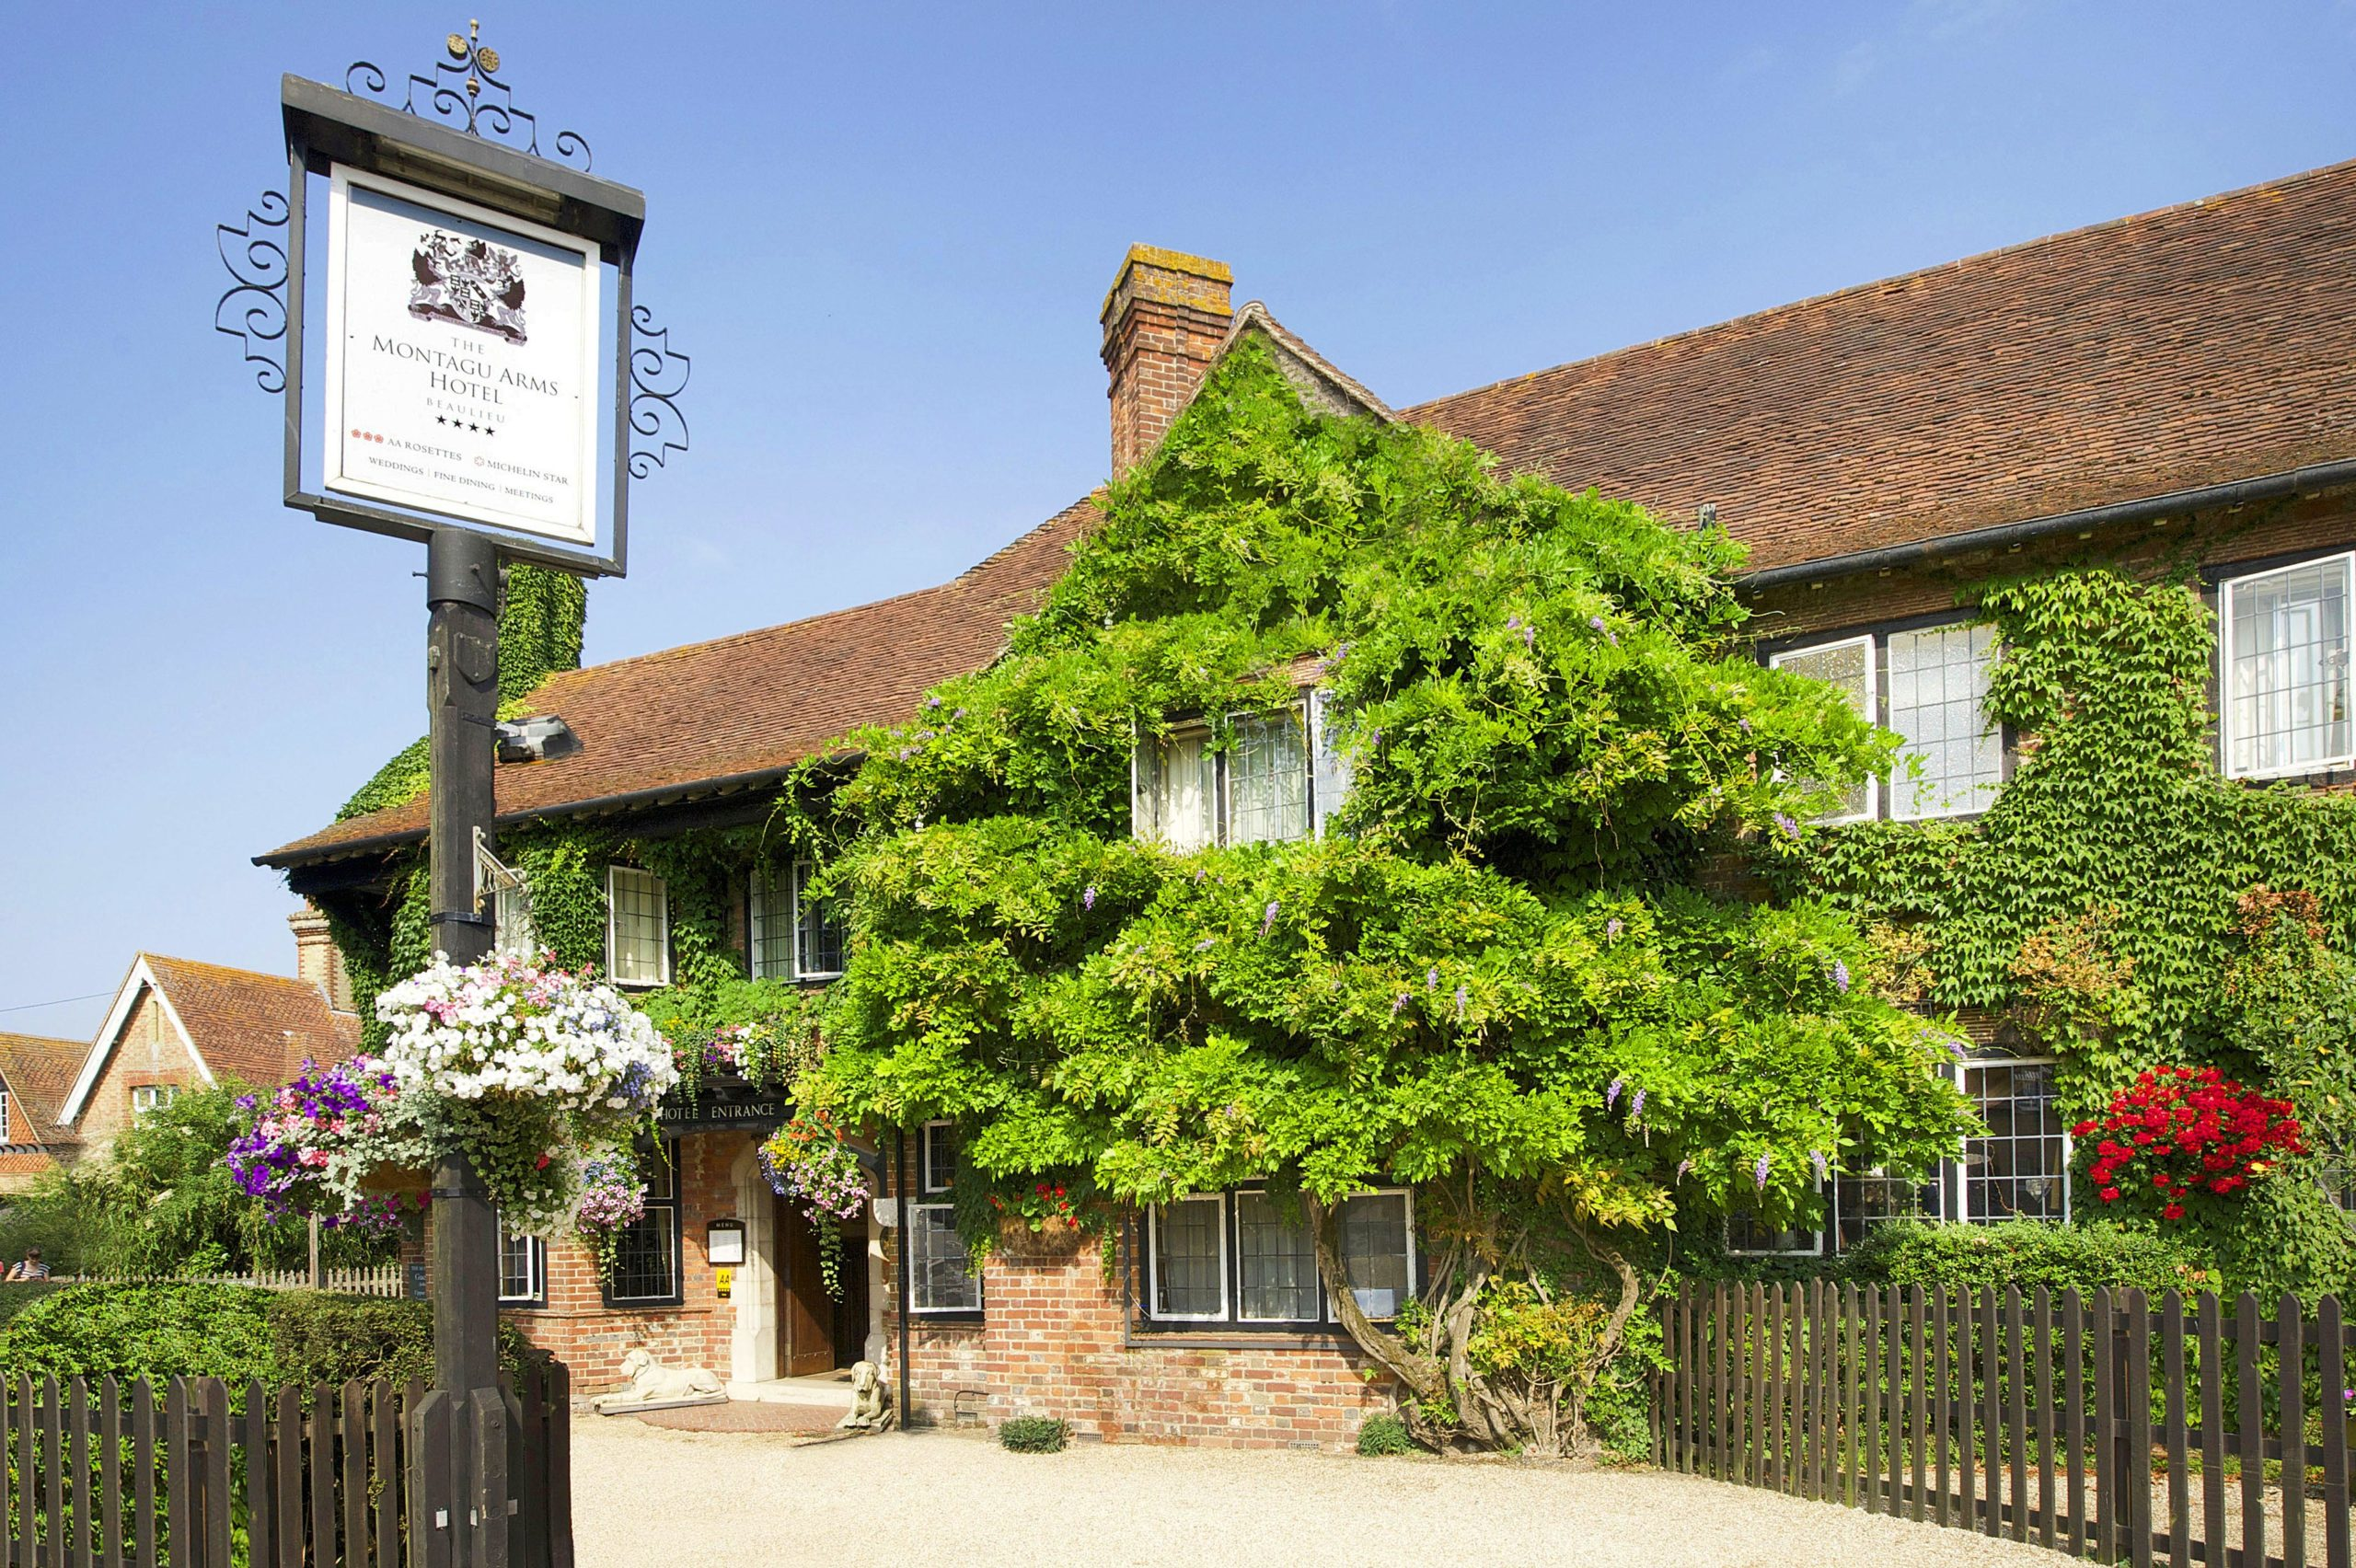 Looking for Team Building accommodation in The New Forest?